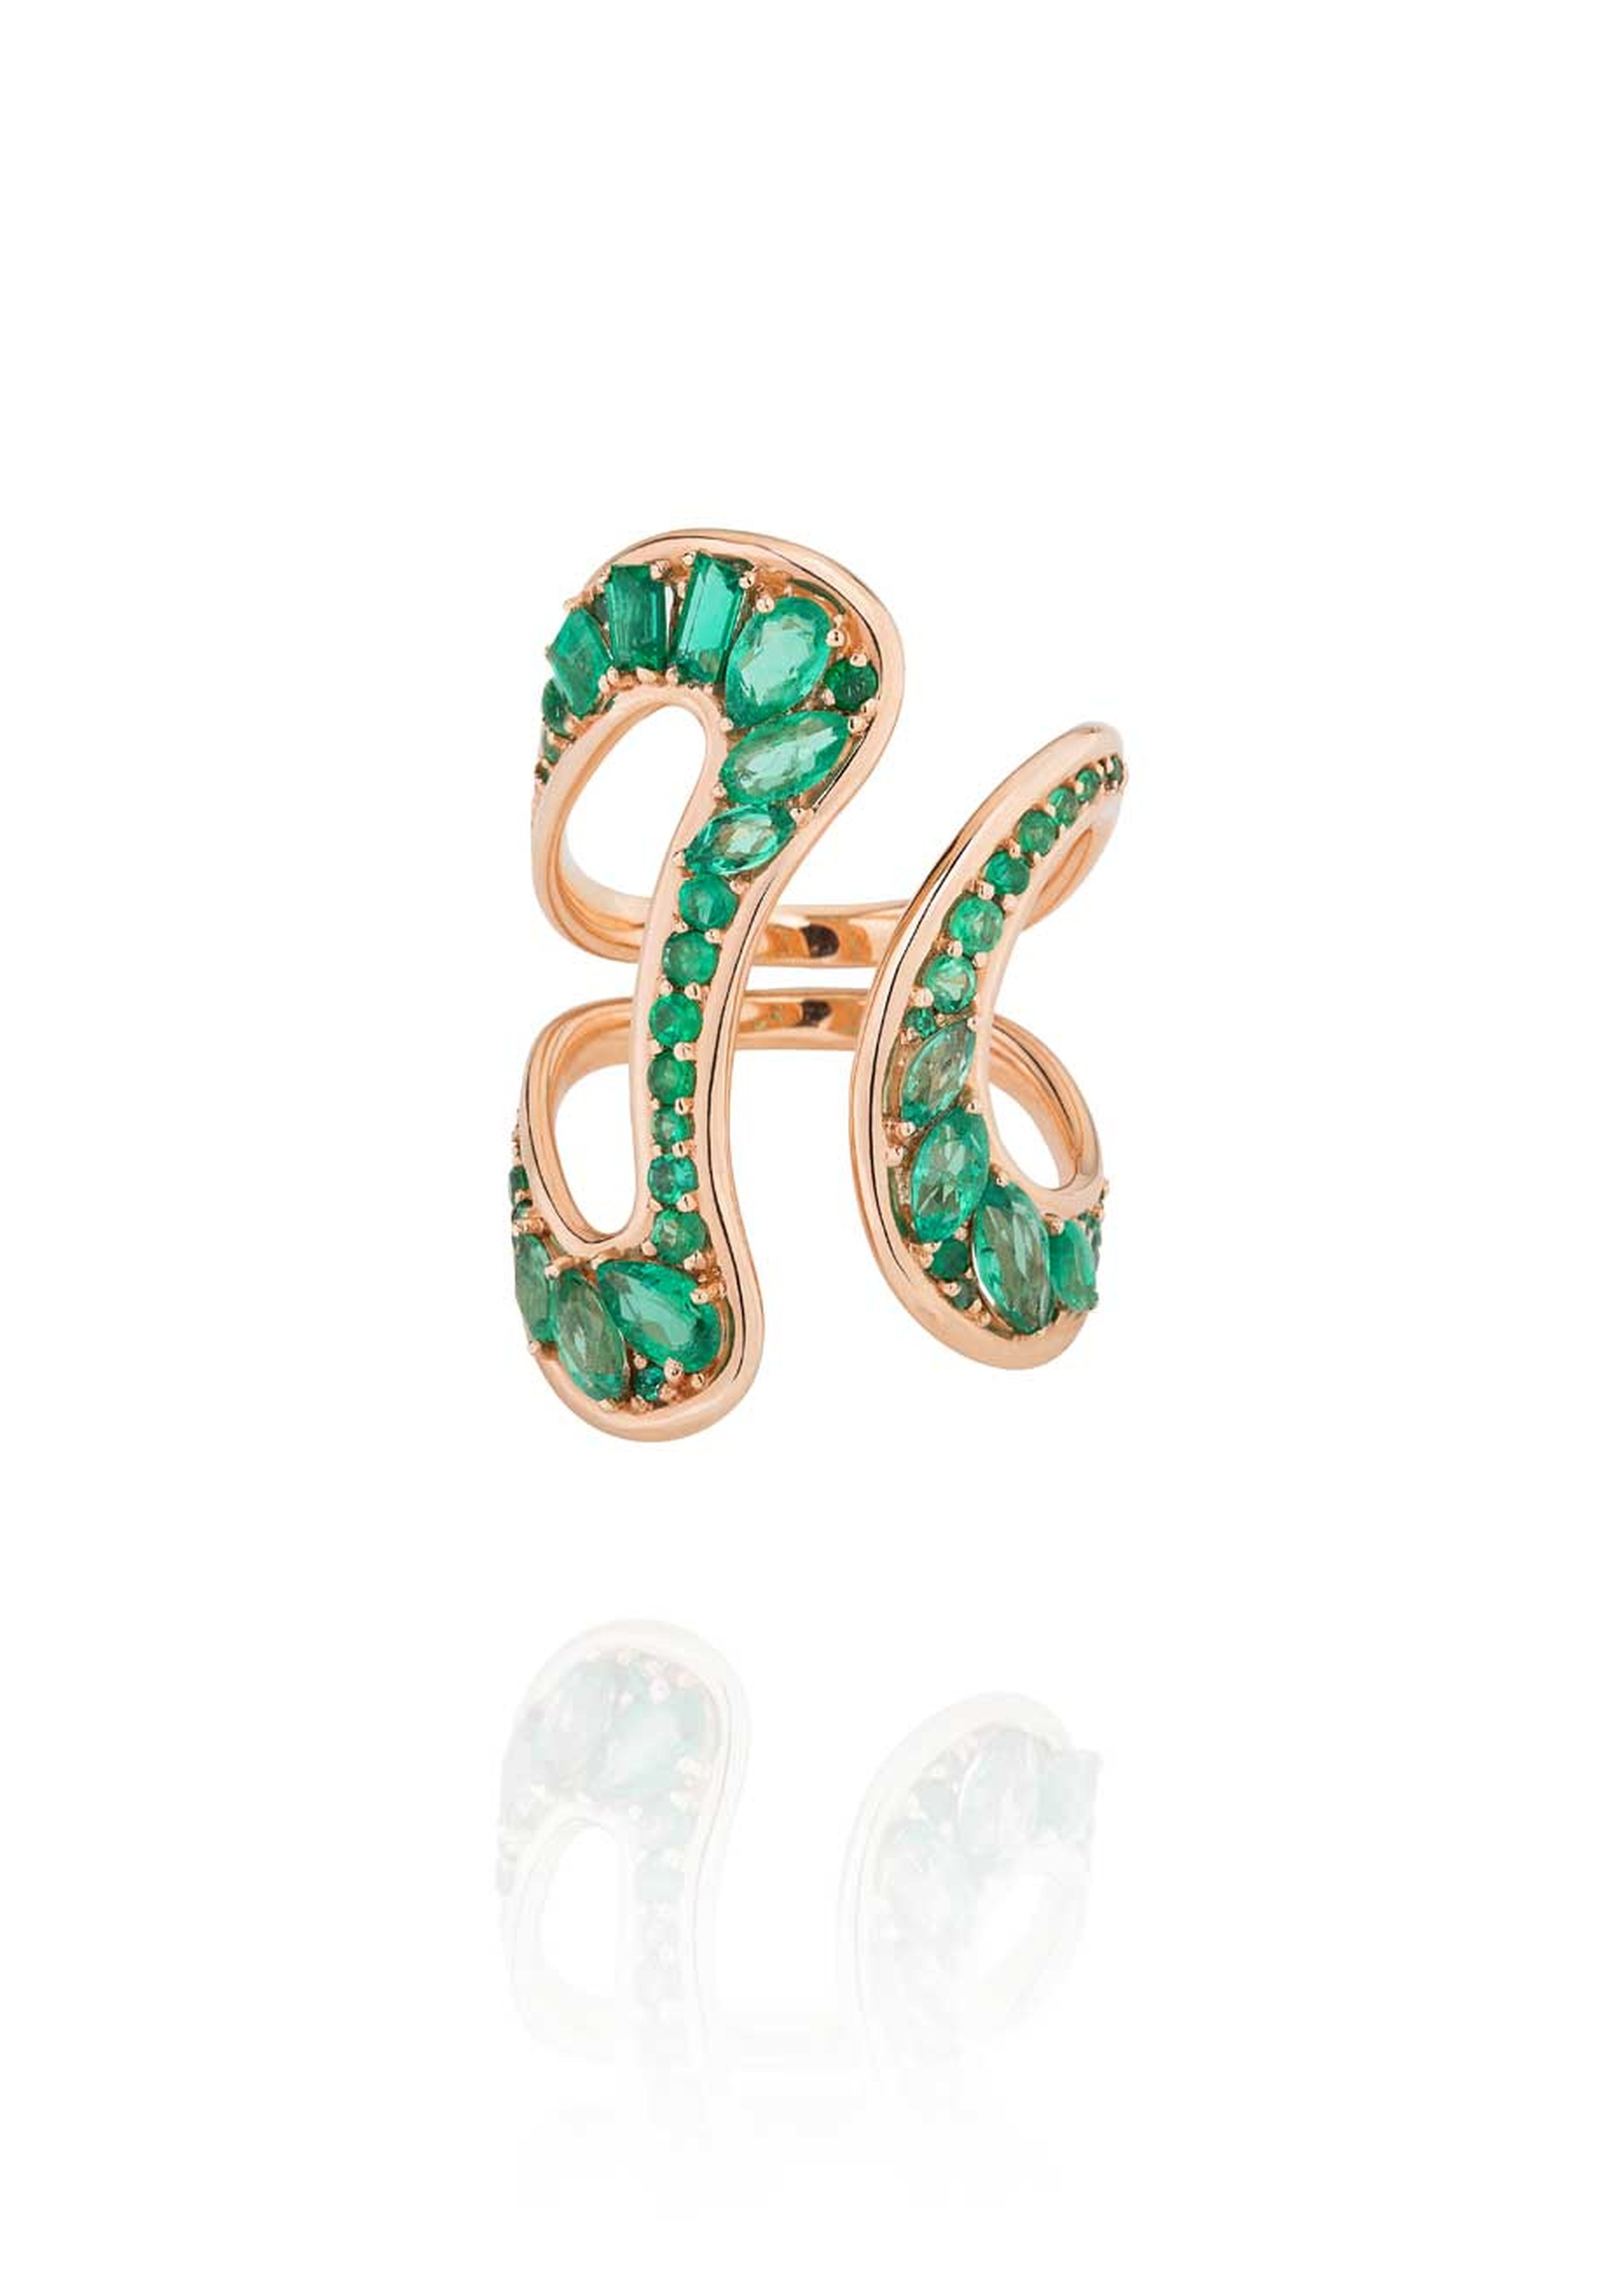 Fernando Jorge Stream emerald ring in rose gold.